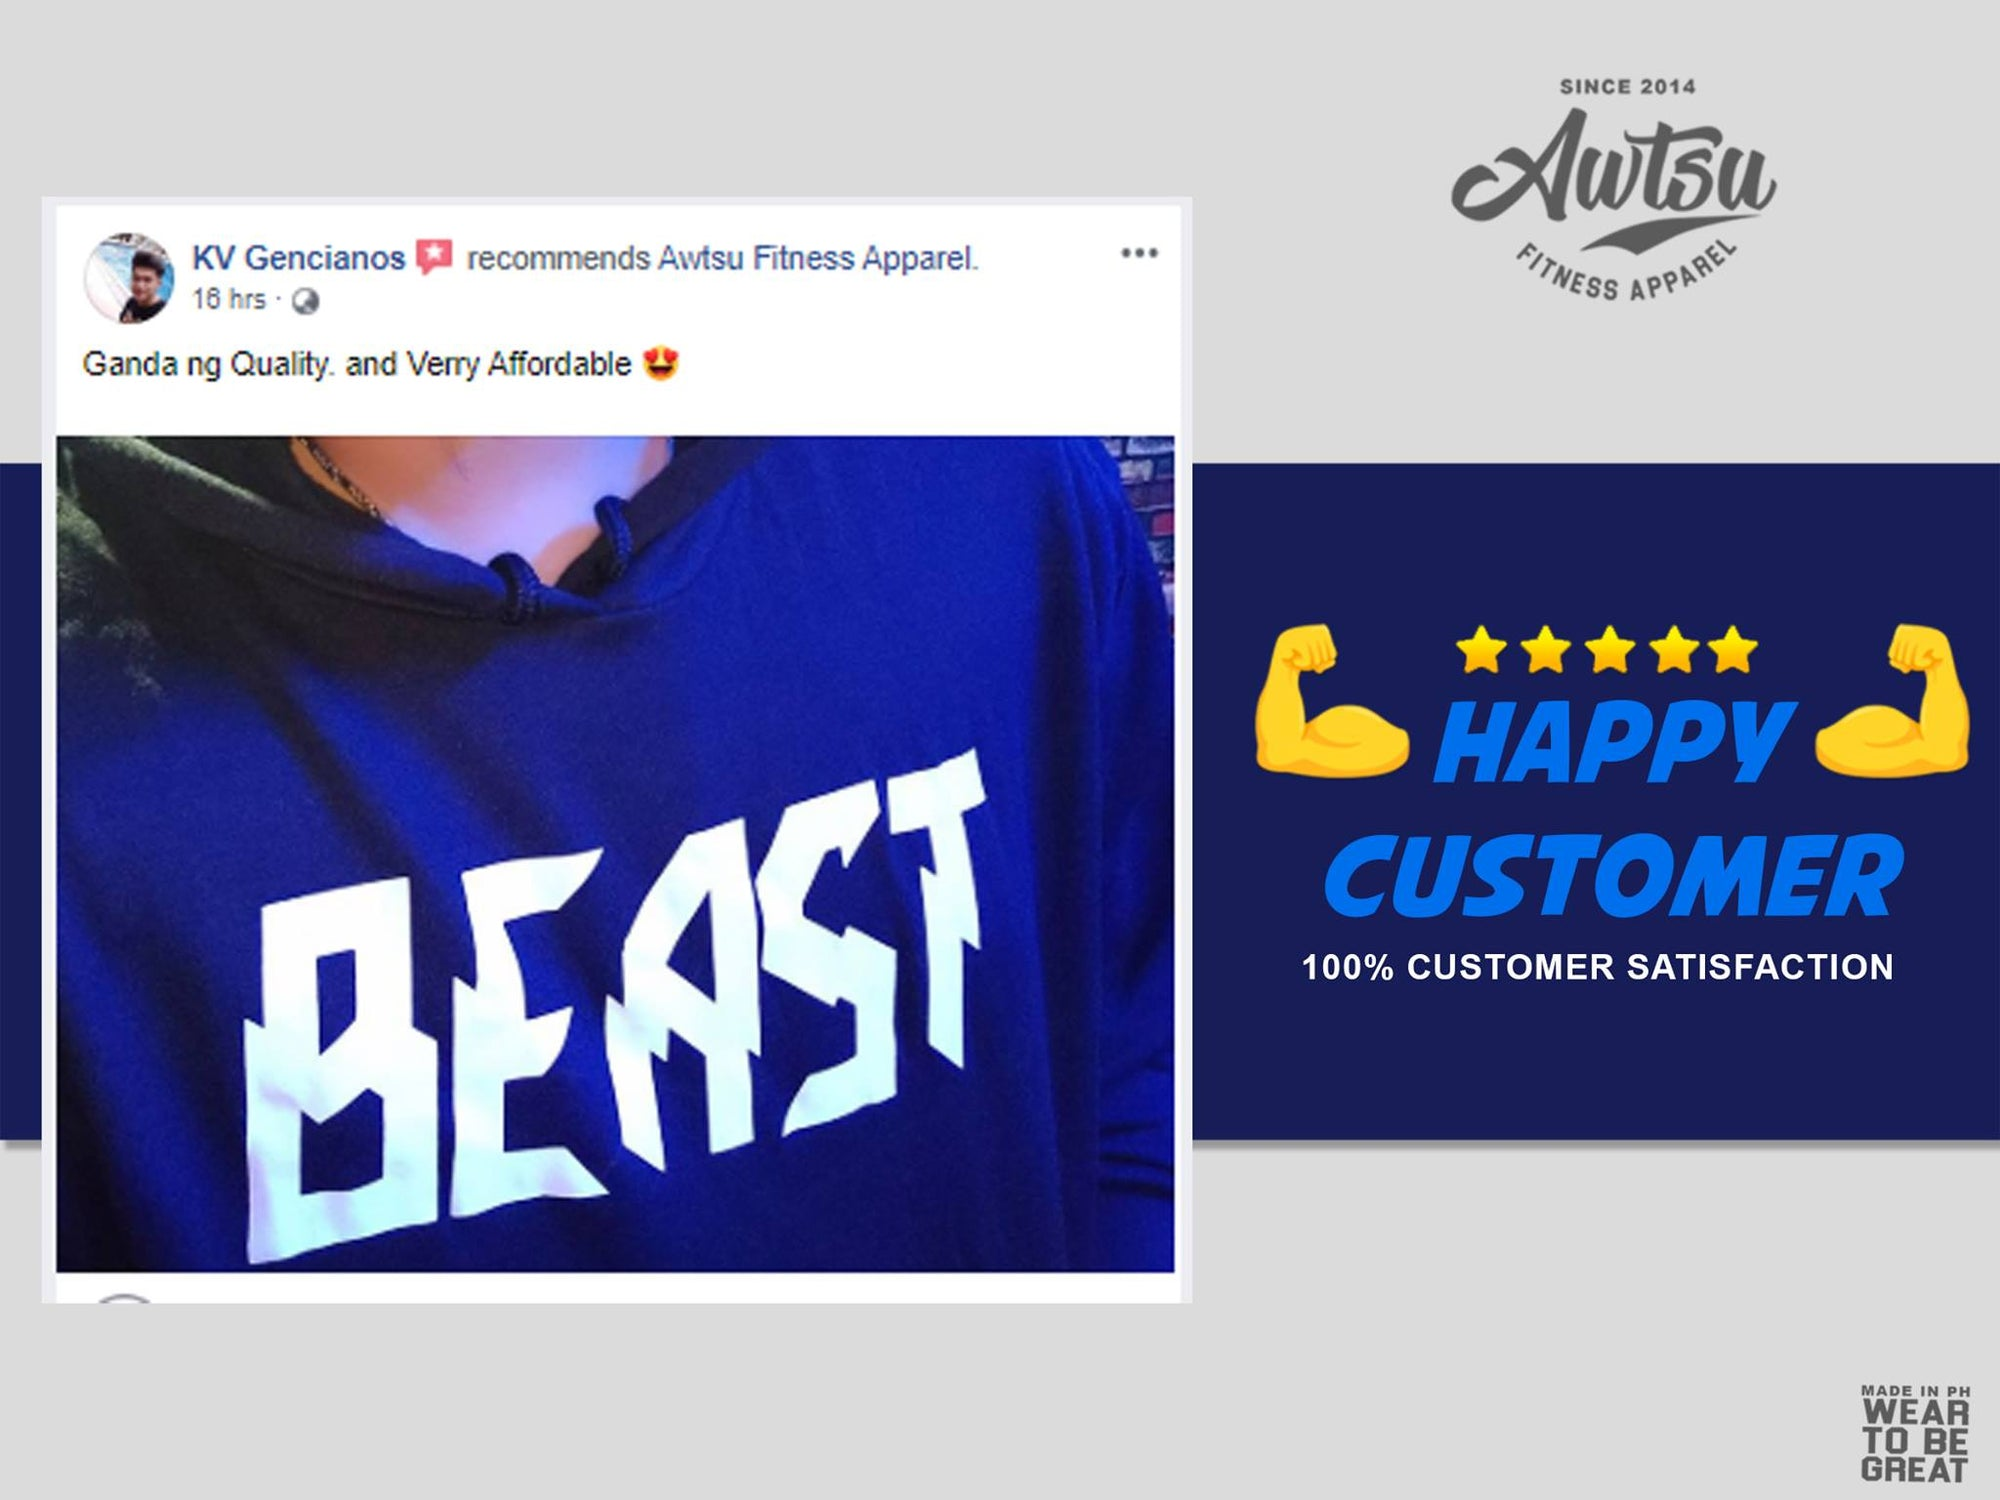 KV Gencianos 5 Star Review of Awtsu Fitness Apparel